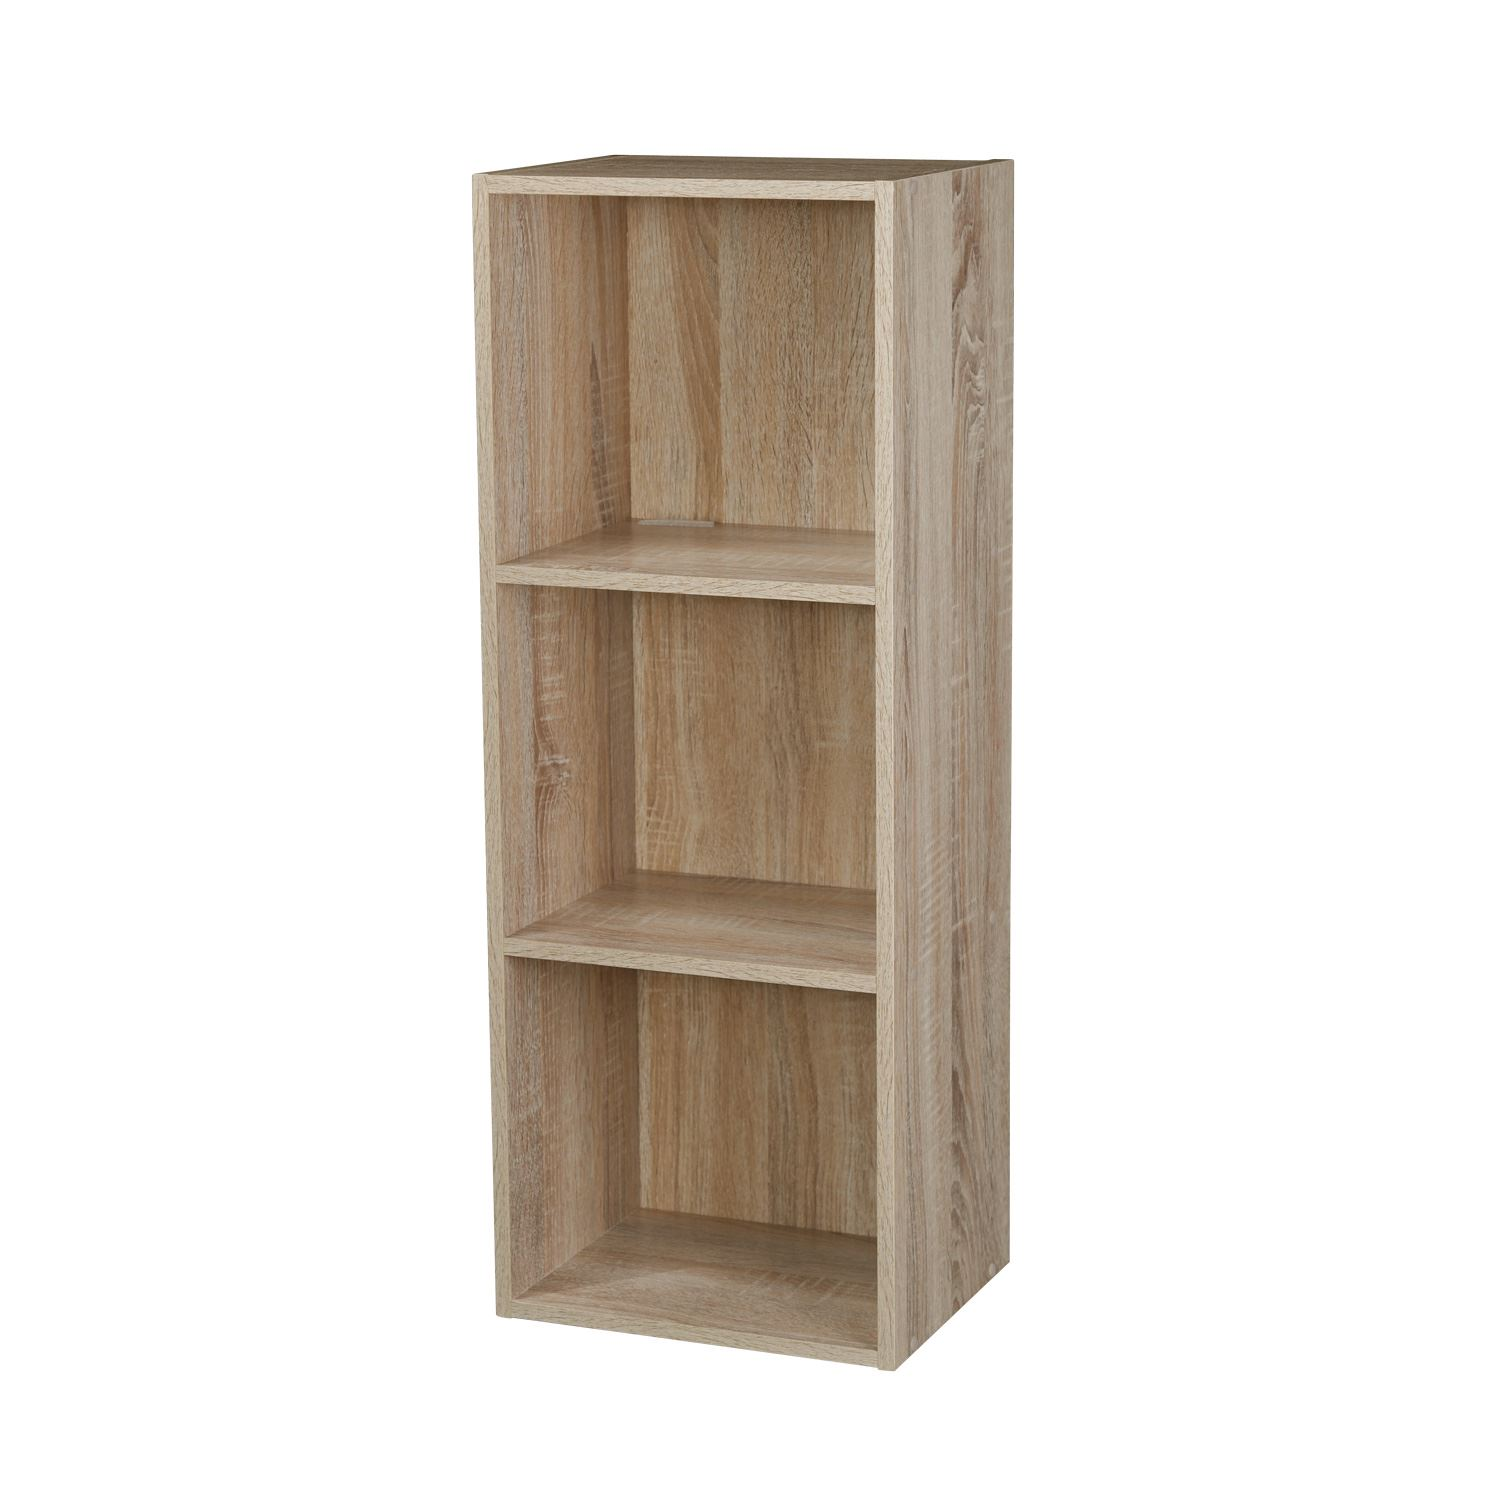 2 3 4 Tier Wooden Bookcase Shelving Display